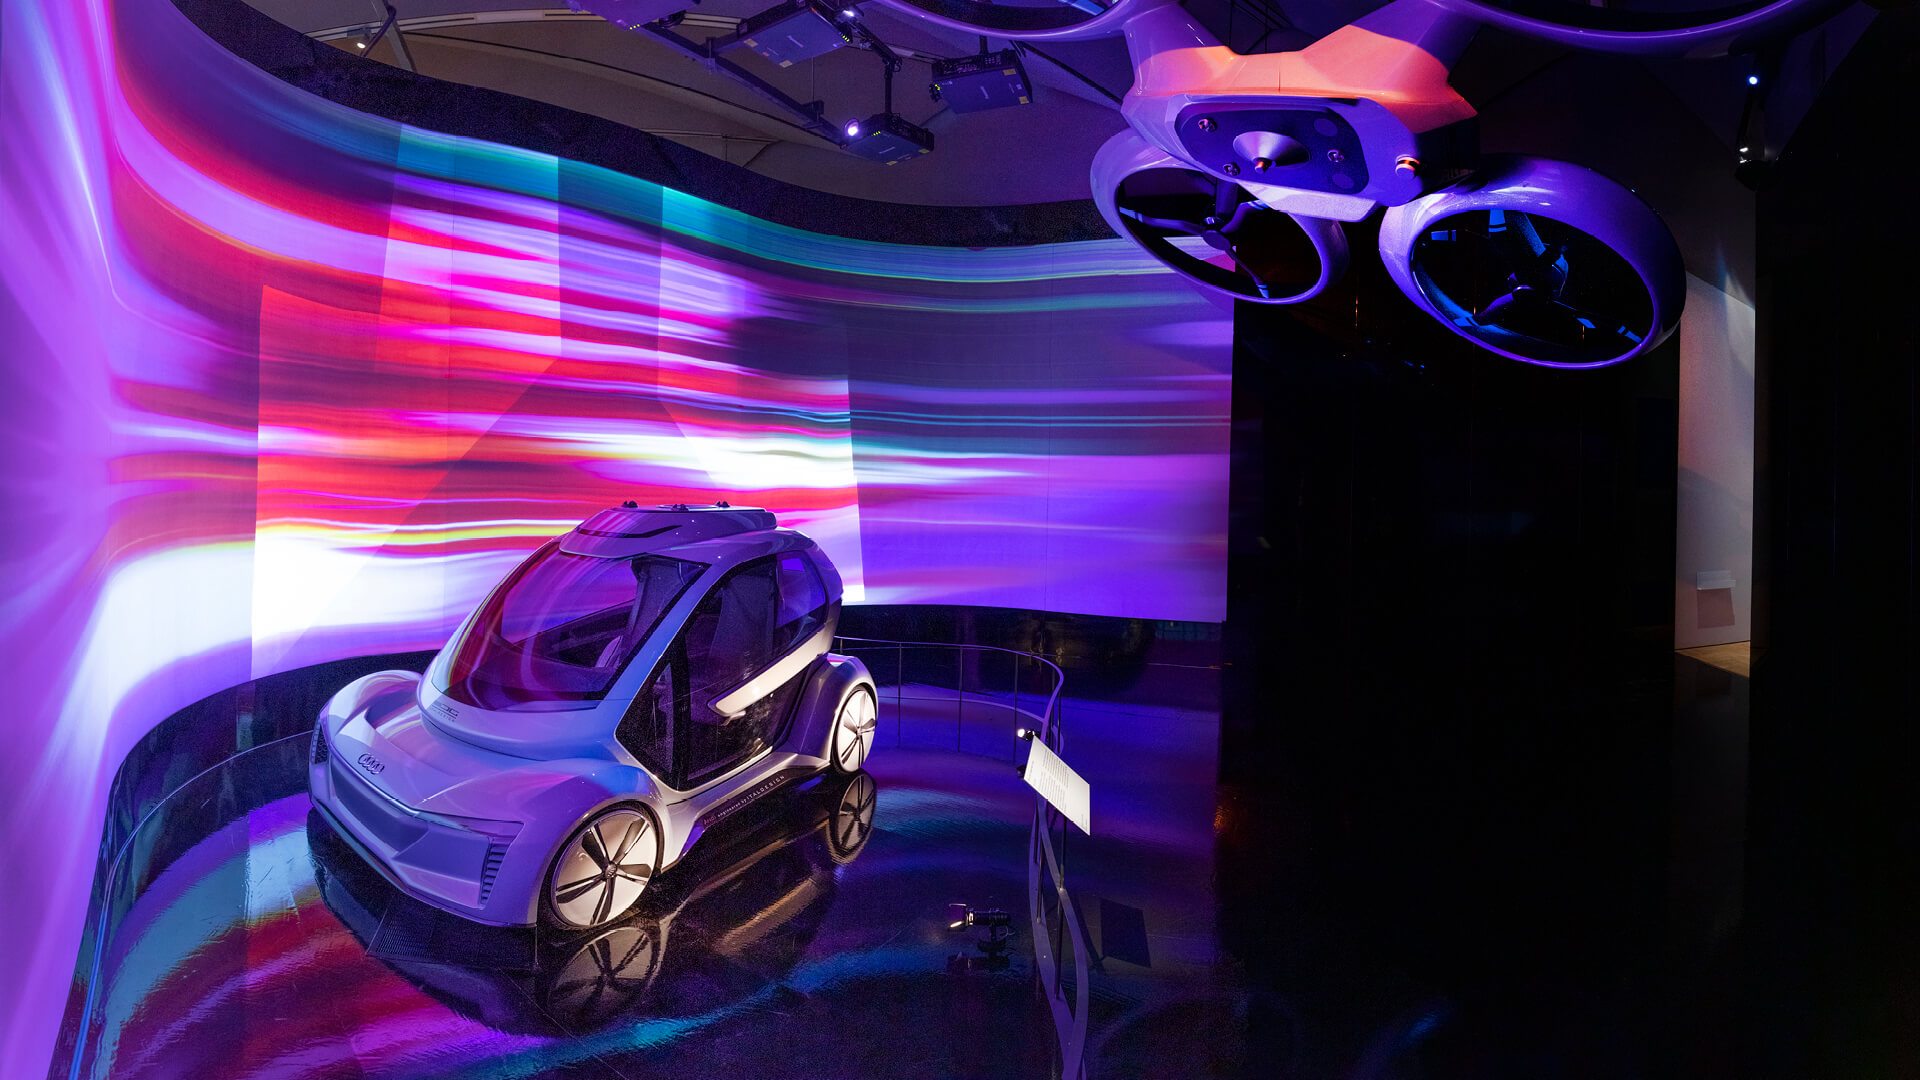 The Pop.Up Next flying car (2018) by Italdesign with Airbus and Audi AG, in situ at Cars: Accelerating the Modern World at the Victoria and Albert Museum, London | Cars: Accelerating the Modern World | STIRworld